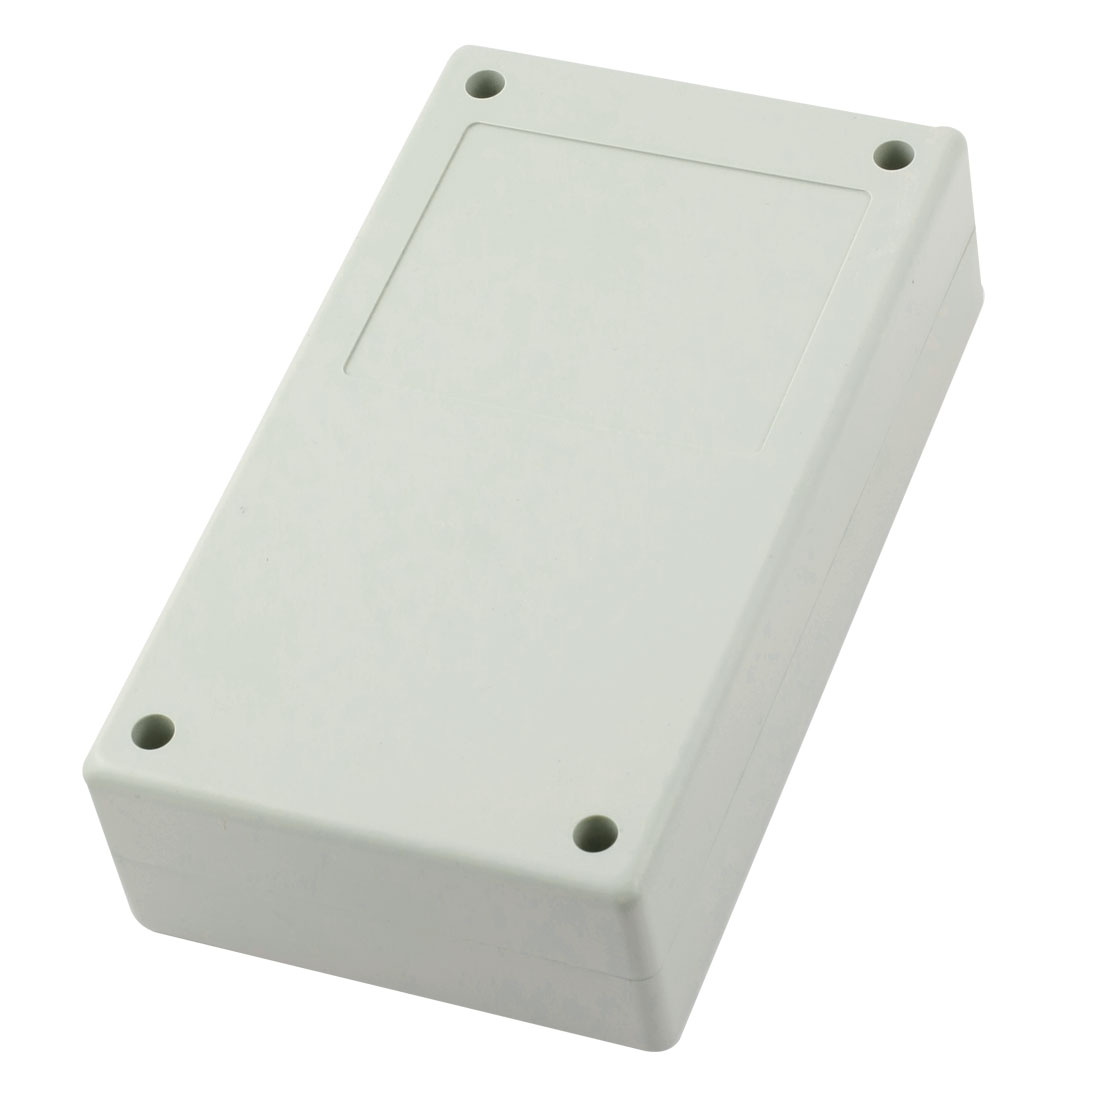 Light Gray Plastic Waterproof Sealed Electric Power Junction Enclose Box 140mm x 82mm x 39mm